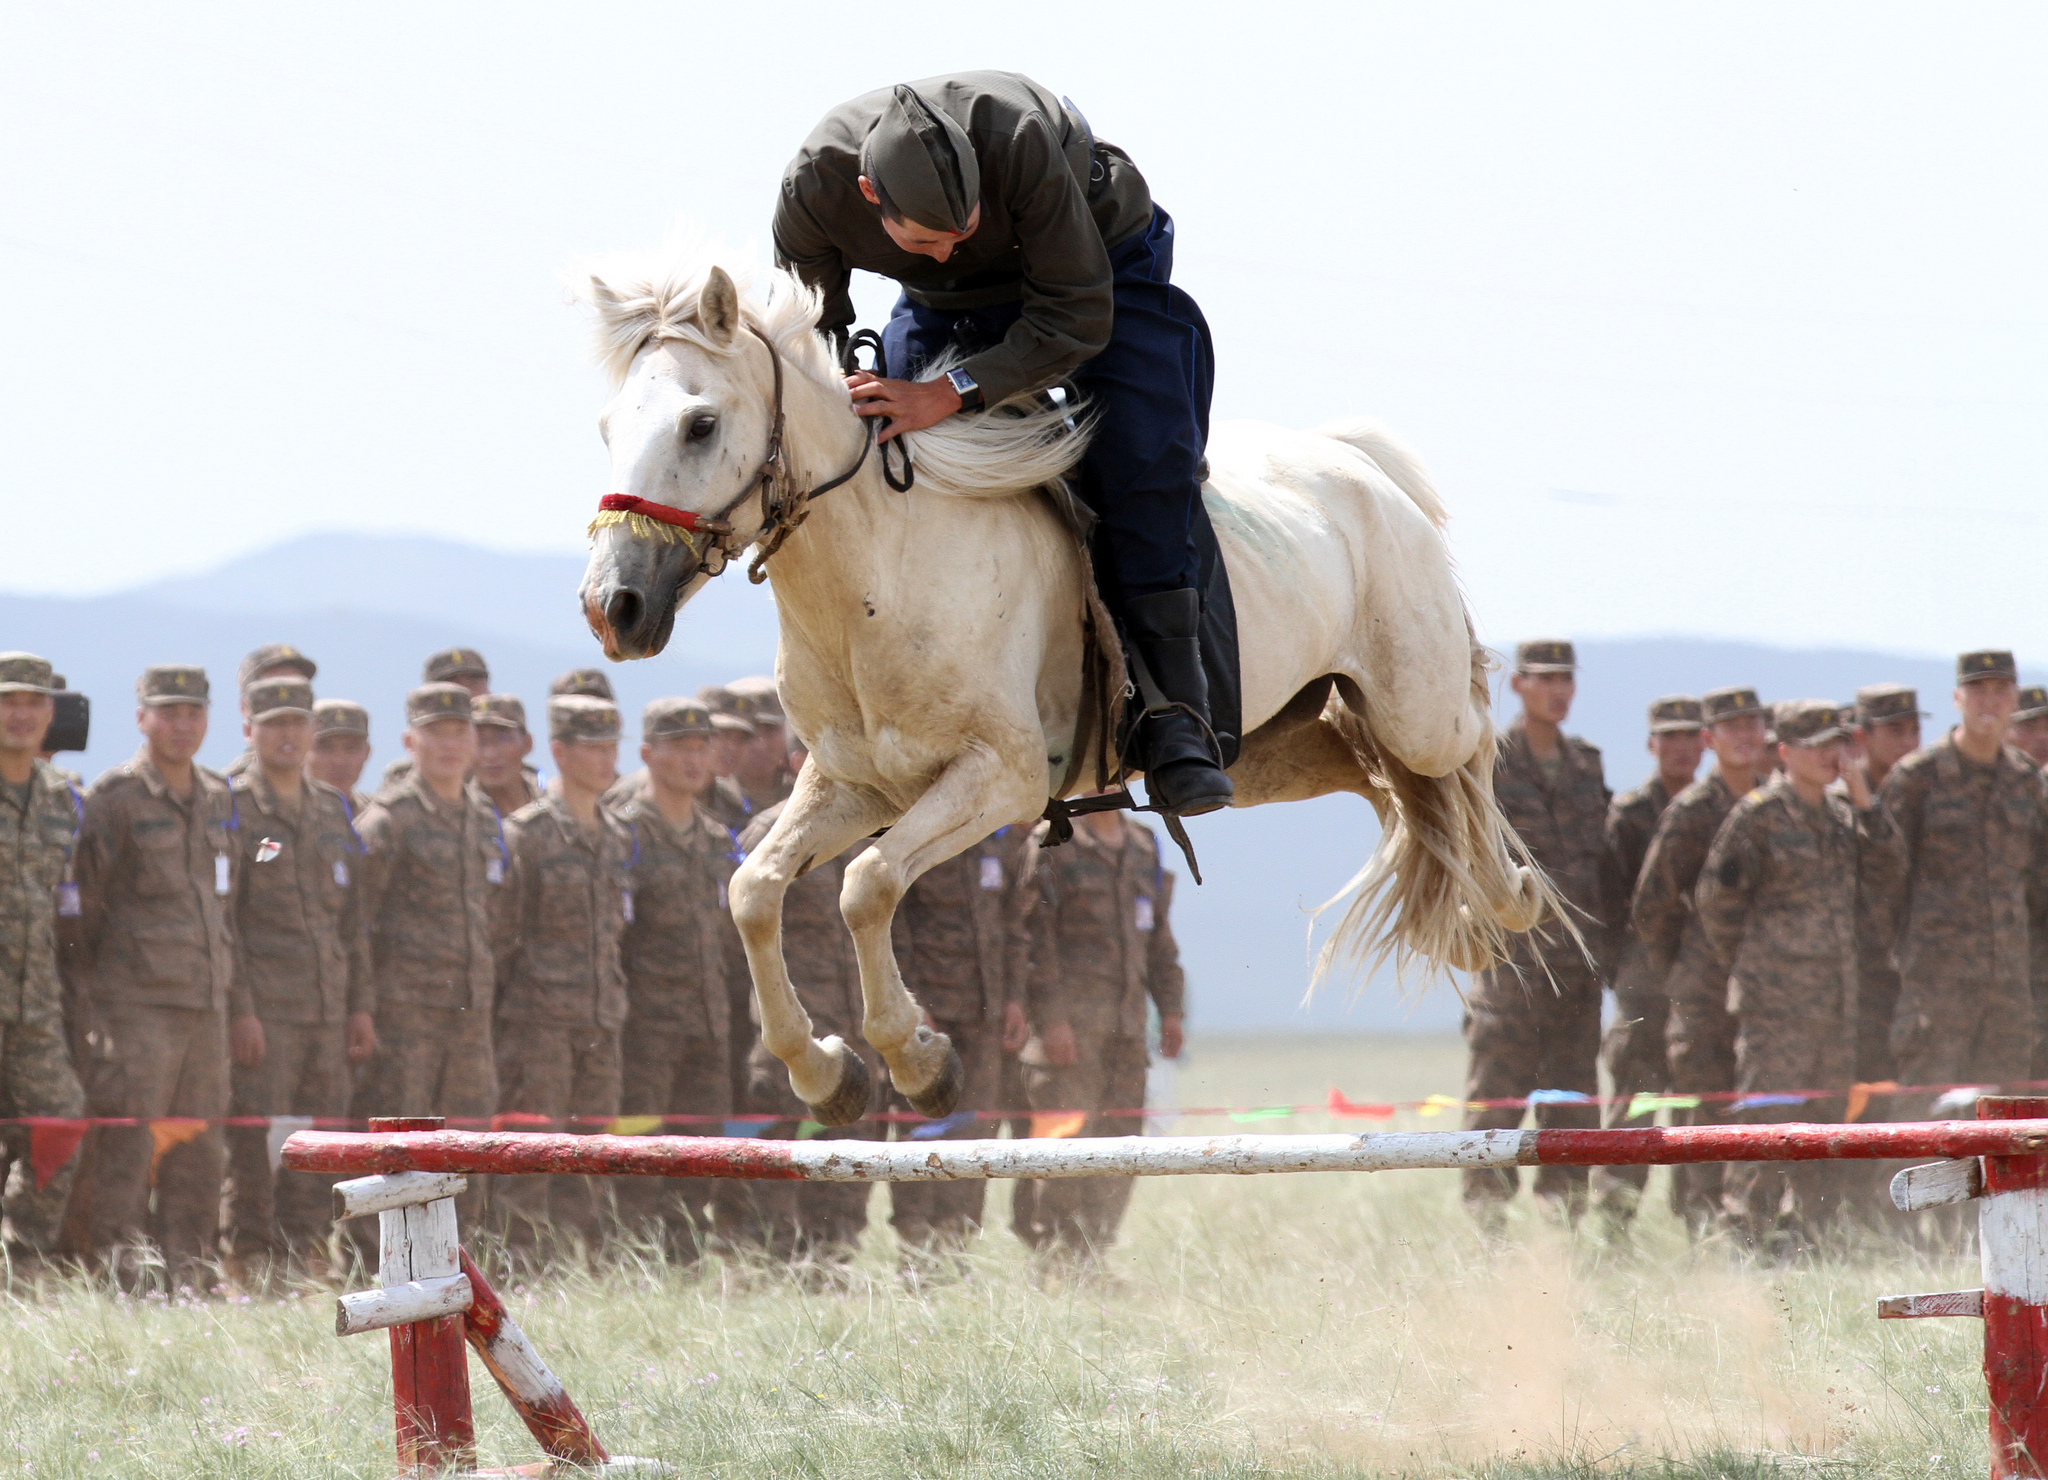 A Member of the Mongolian Armed Forces 234 Cavalry Unit, jumps his horse during the opening ceremony of Exercise Khaan Quest in Five Hills Training Area, Mongolia. Flickr - DVIDSHUB